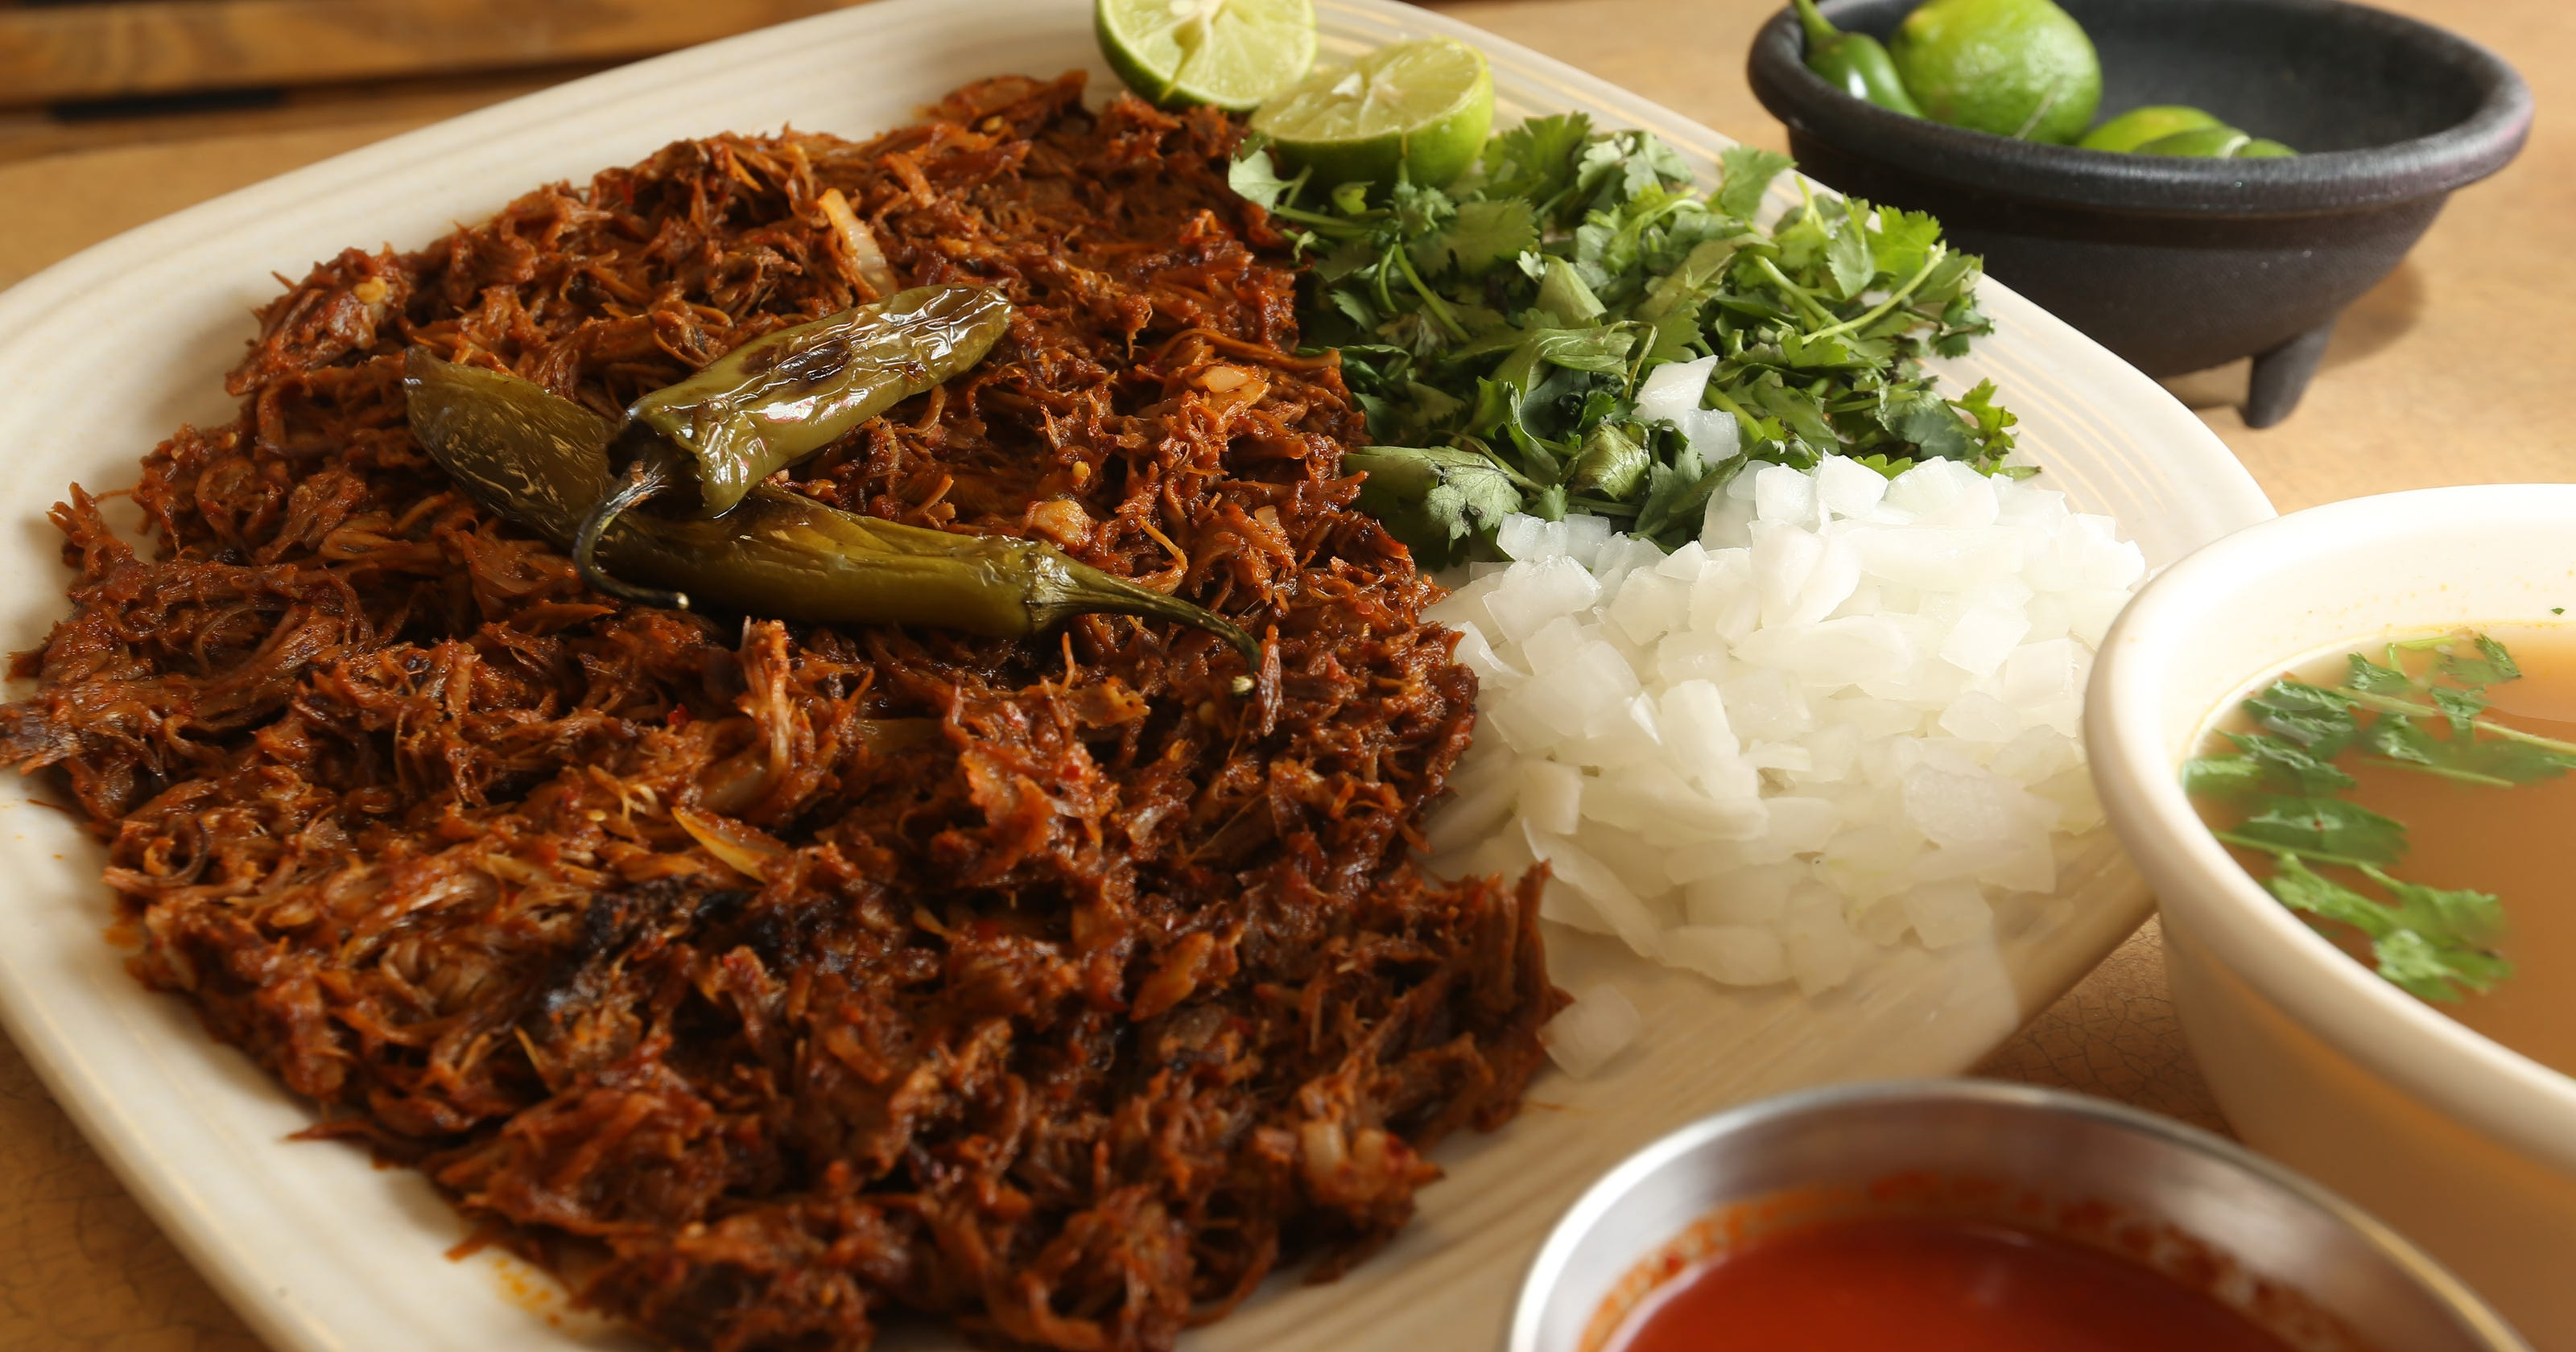 Looking for a place to eat? El Paso restaurant listings